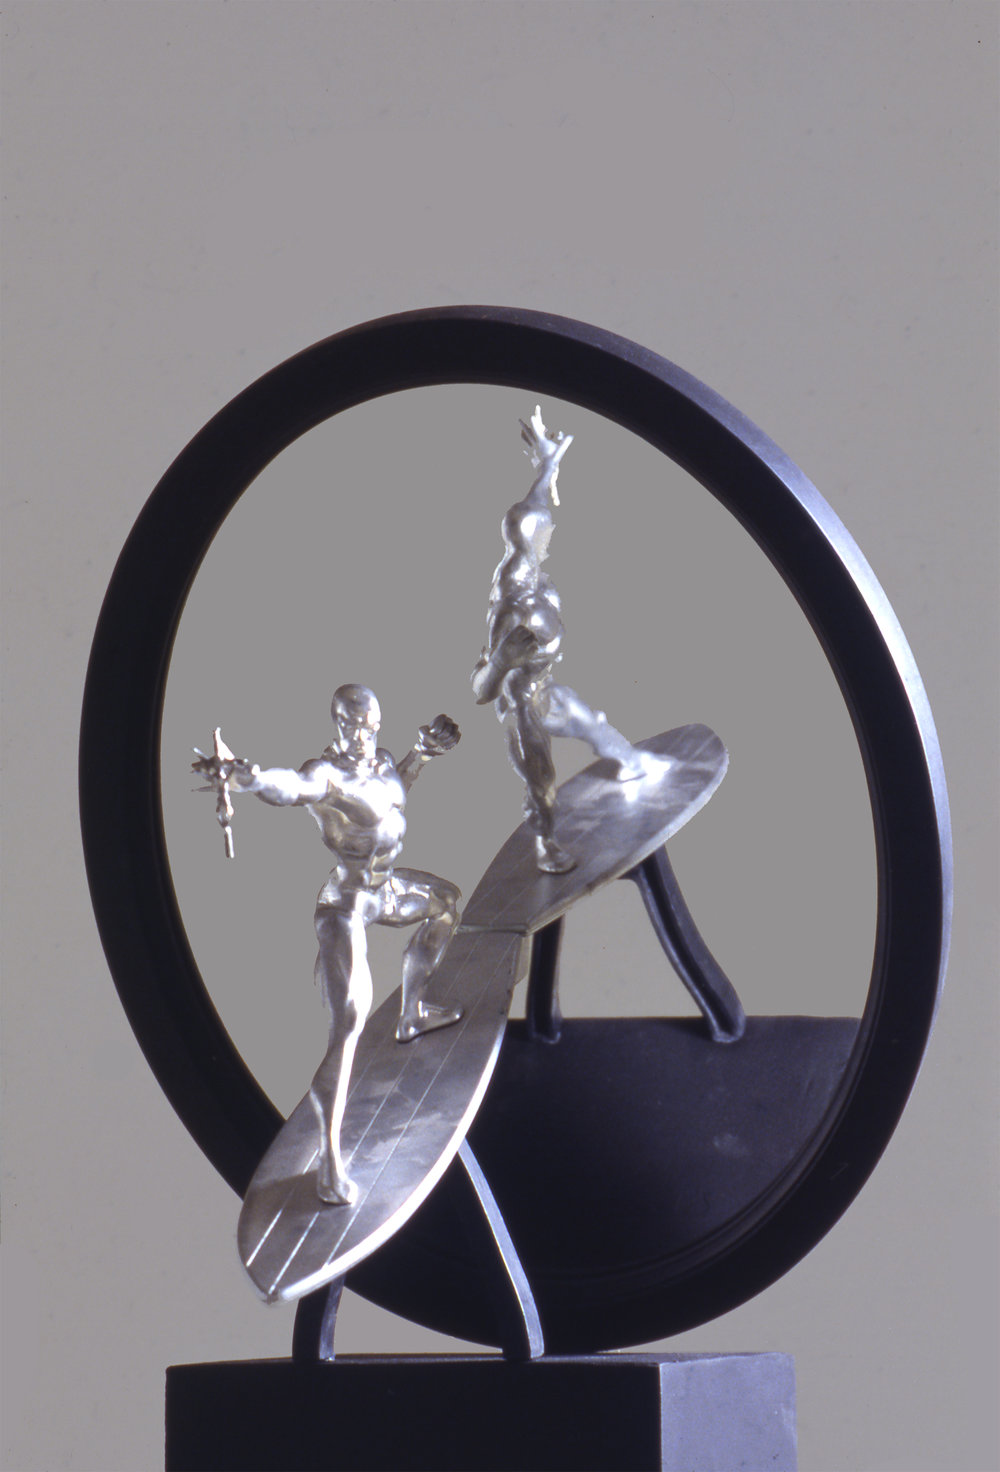 SILVER SURFER - TEMPUS FUGIT - REYKJAVIK - ICELAND , 1998 . Mixed media. Photo: Claudio Abate